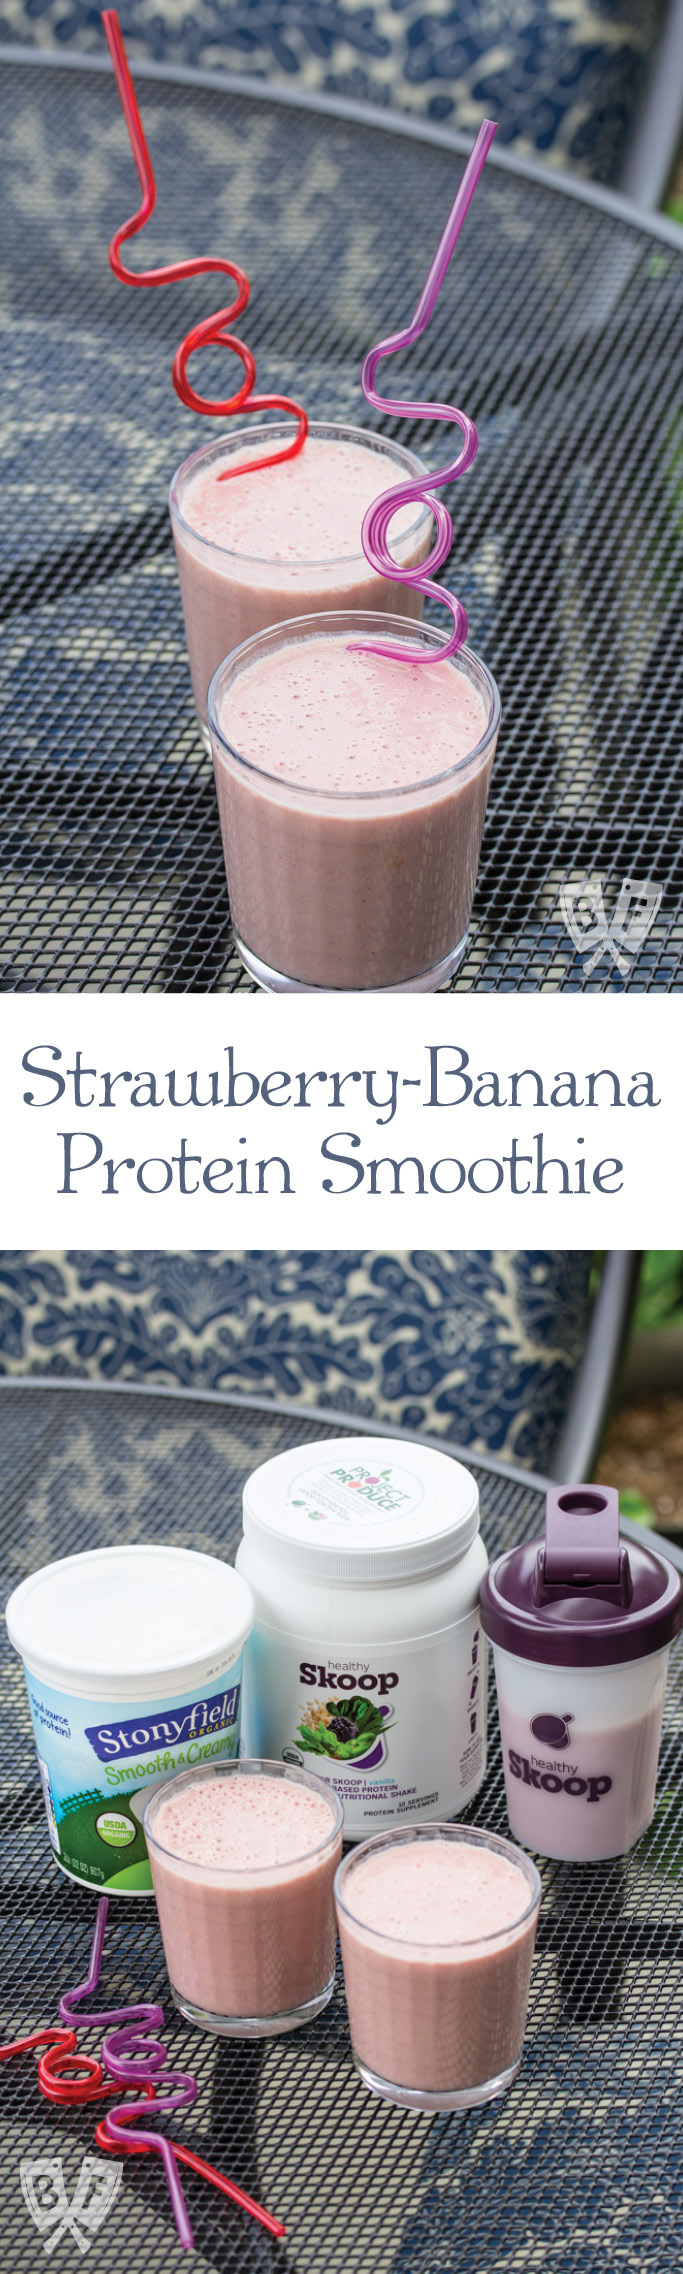 Strawberry-Banana Protein Smoothie: Fresh fruit, yogurt & vanilla protein powder come together in a deliciously refreshing drink! #StonyfieldBlogger